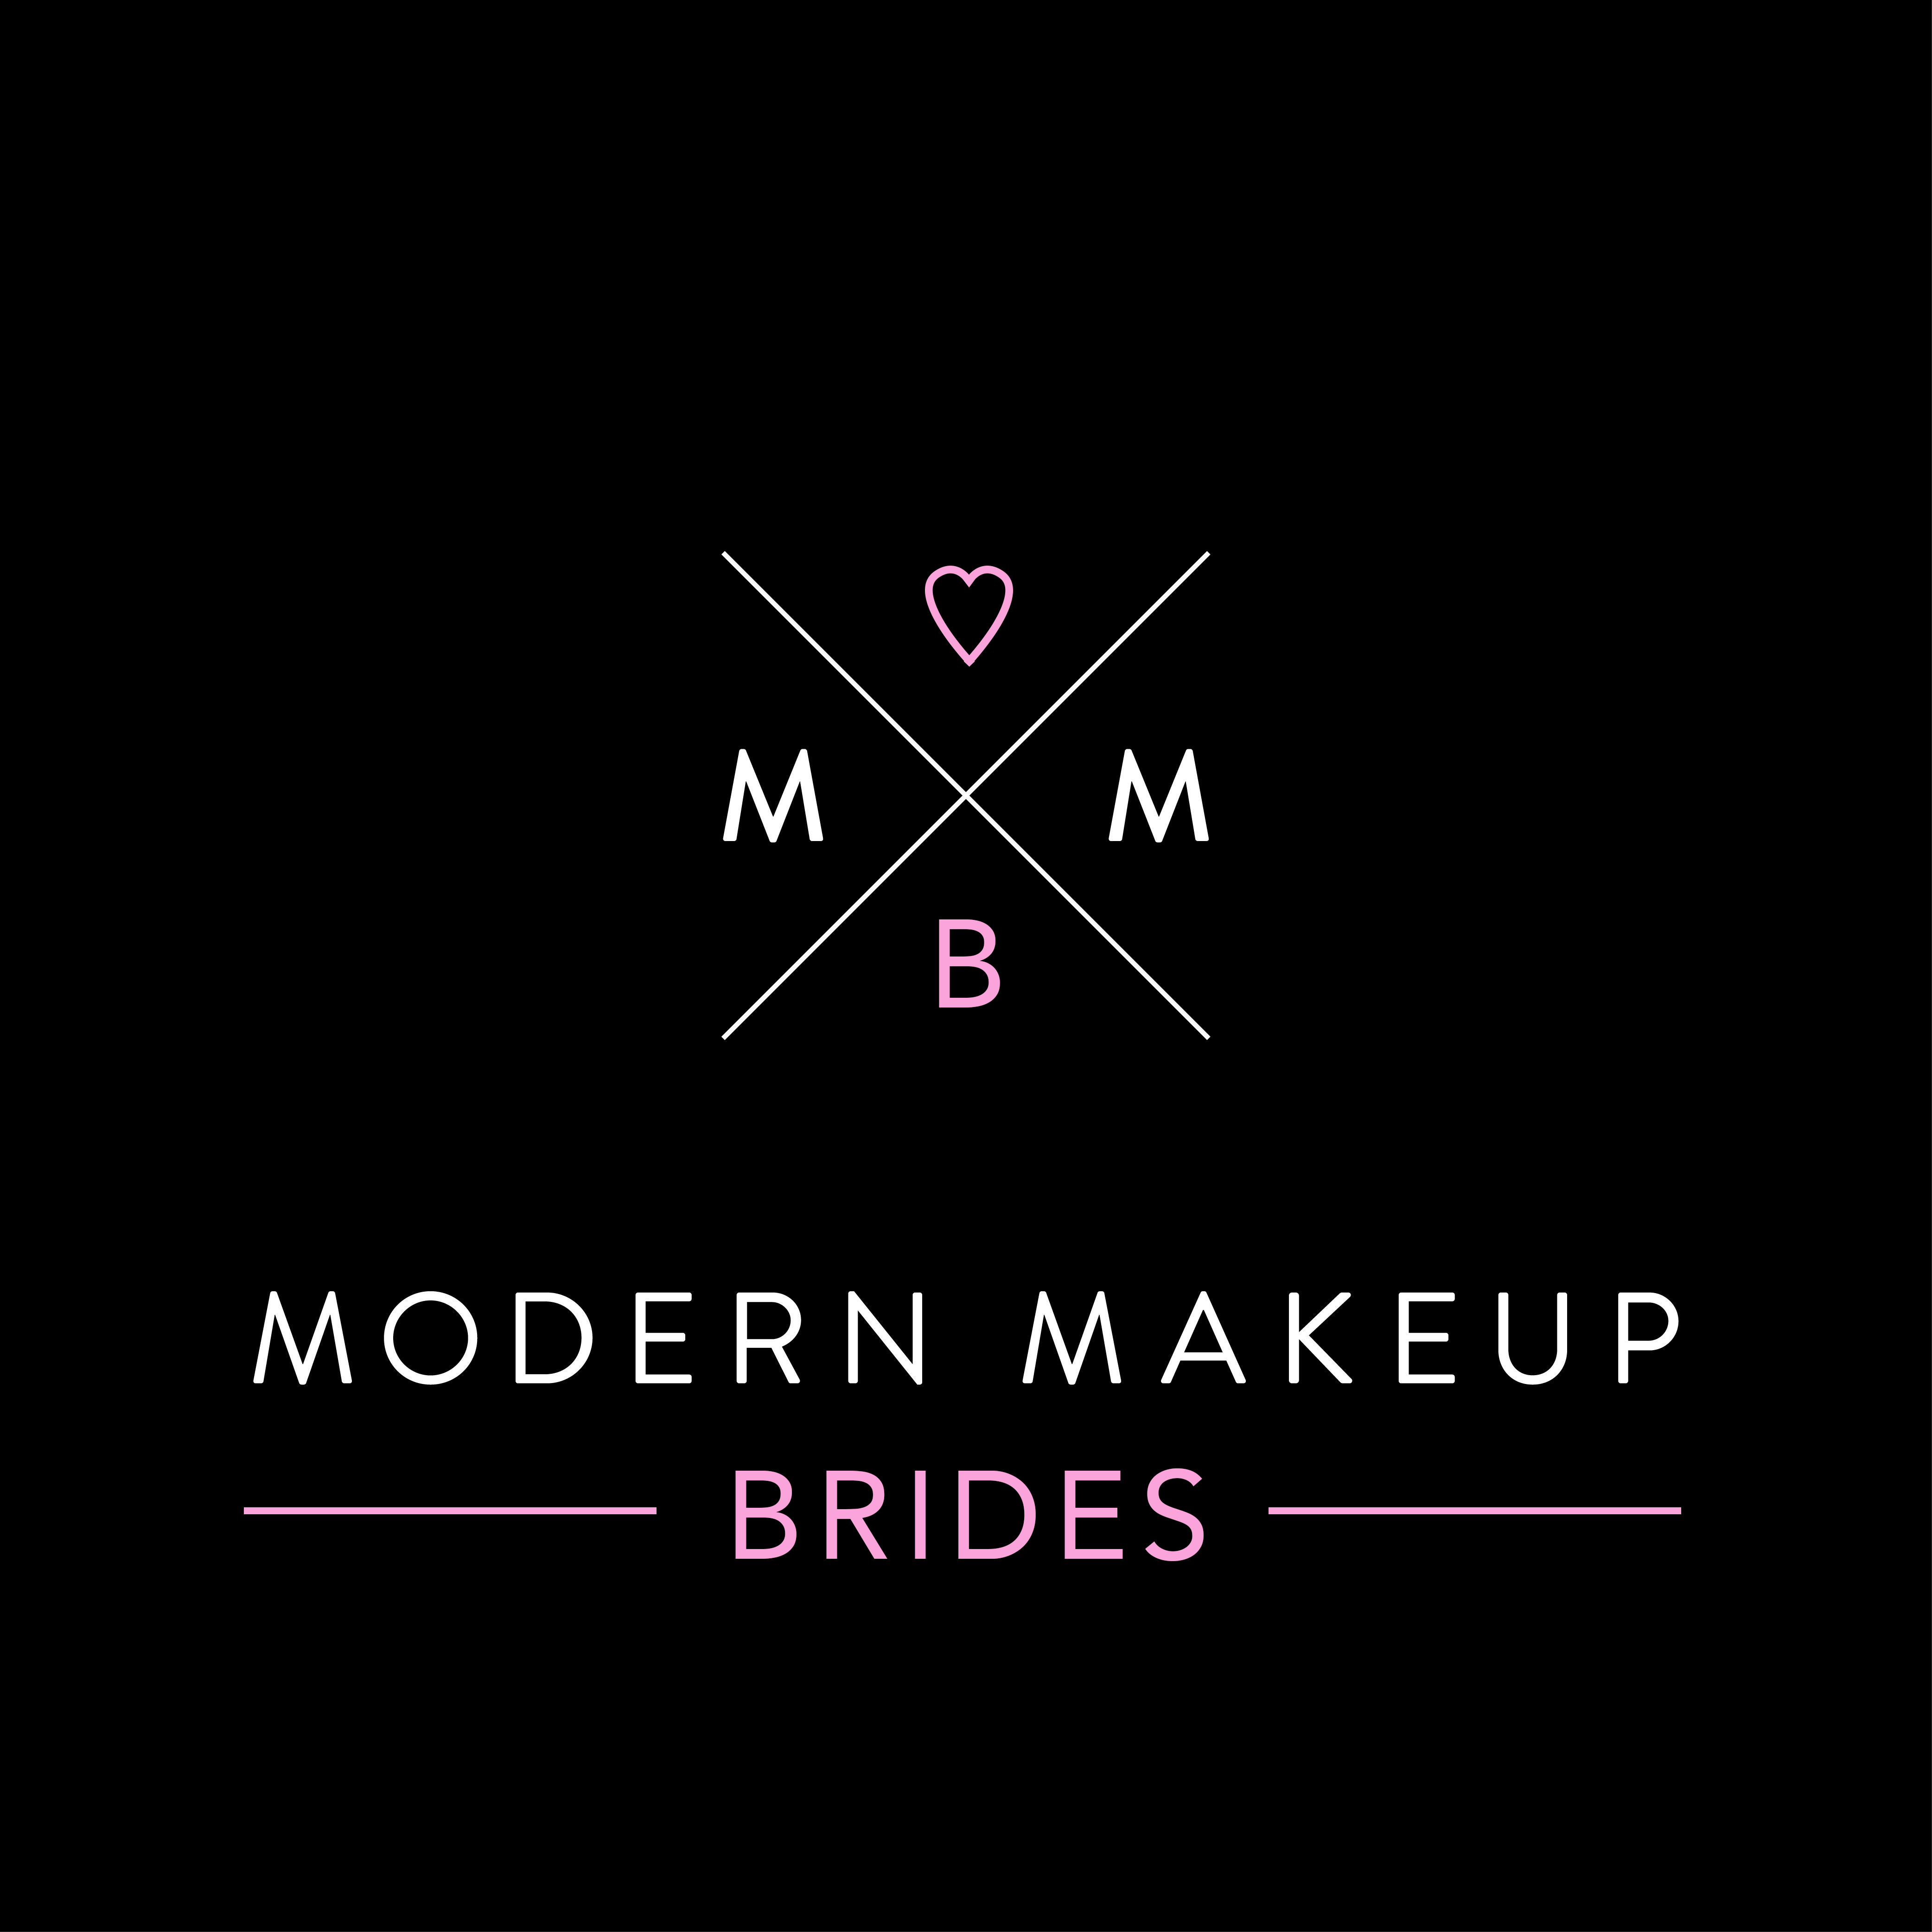 Welcome to Modern Make-up Brides